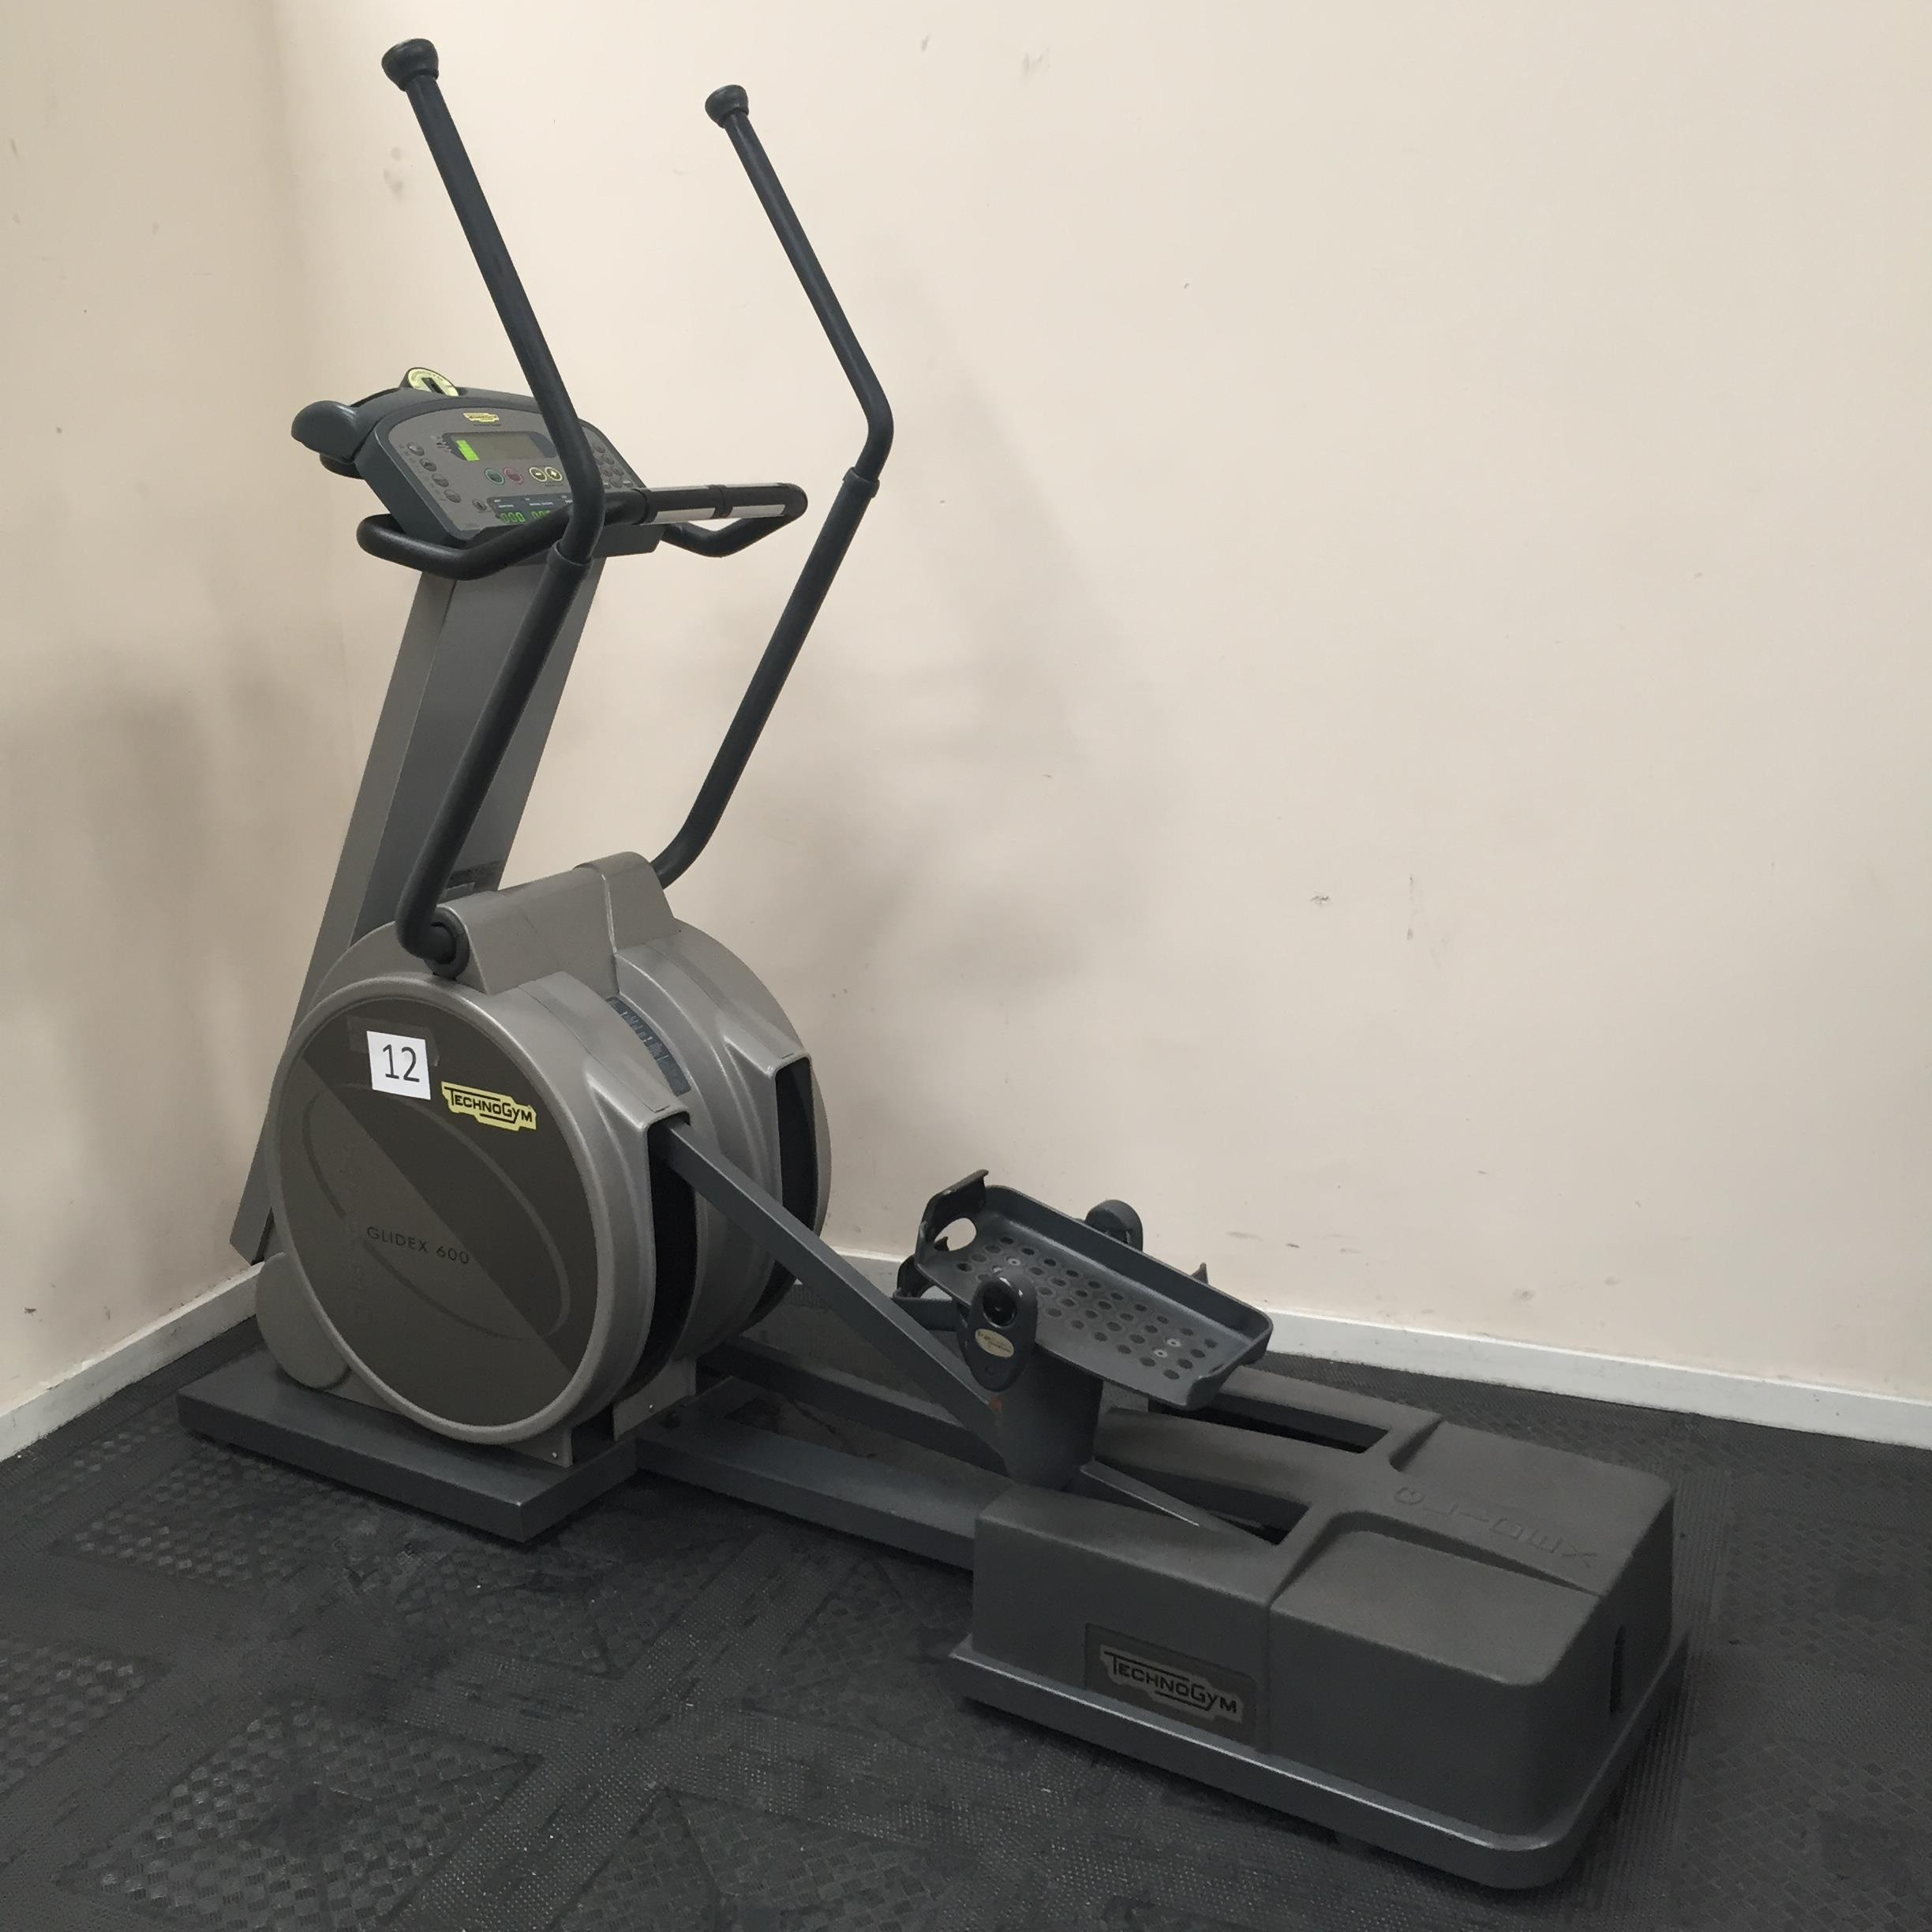 technogym xt pro 600 glidex cross trainer appraisal this. Black Bedroom Furniture Sets. Home Design Ideas